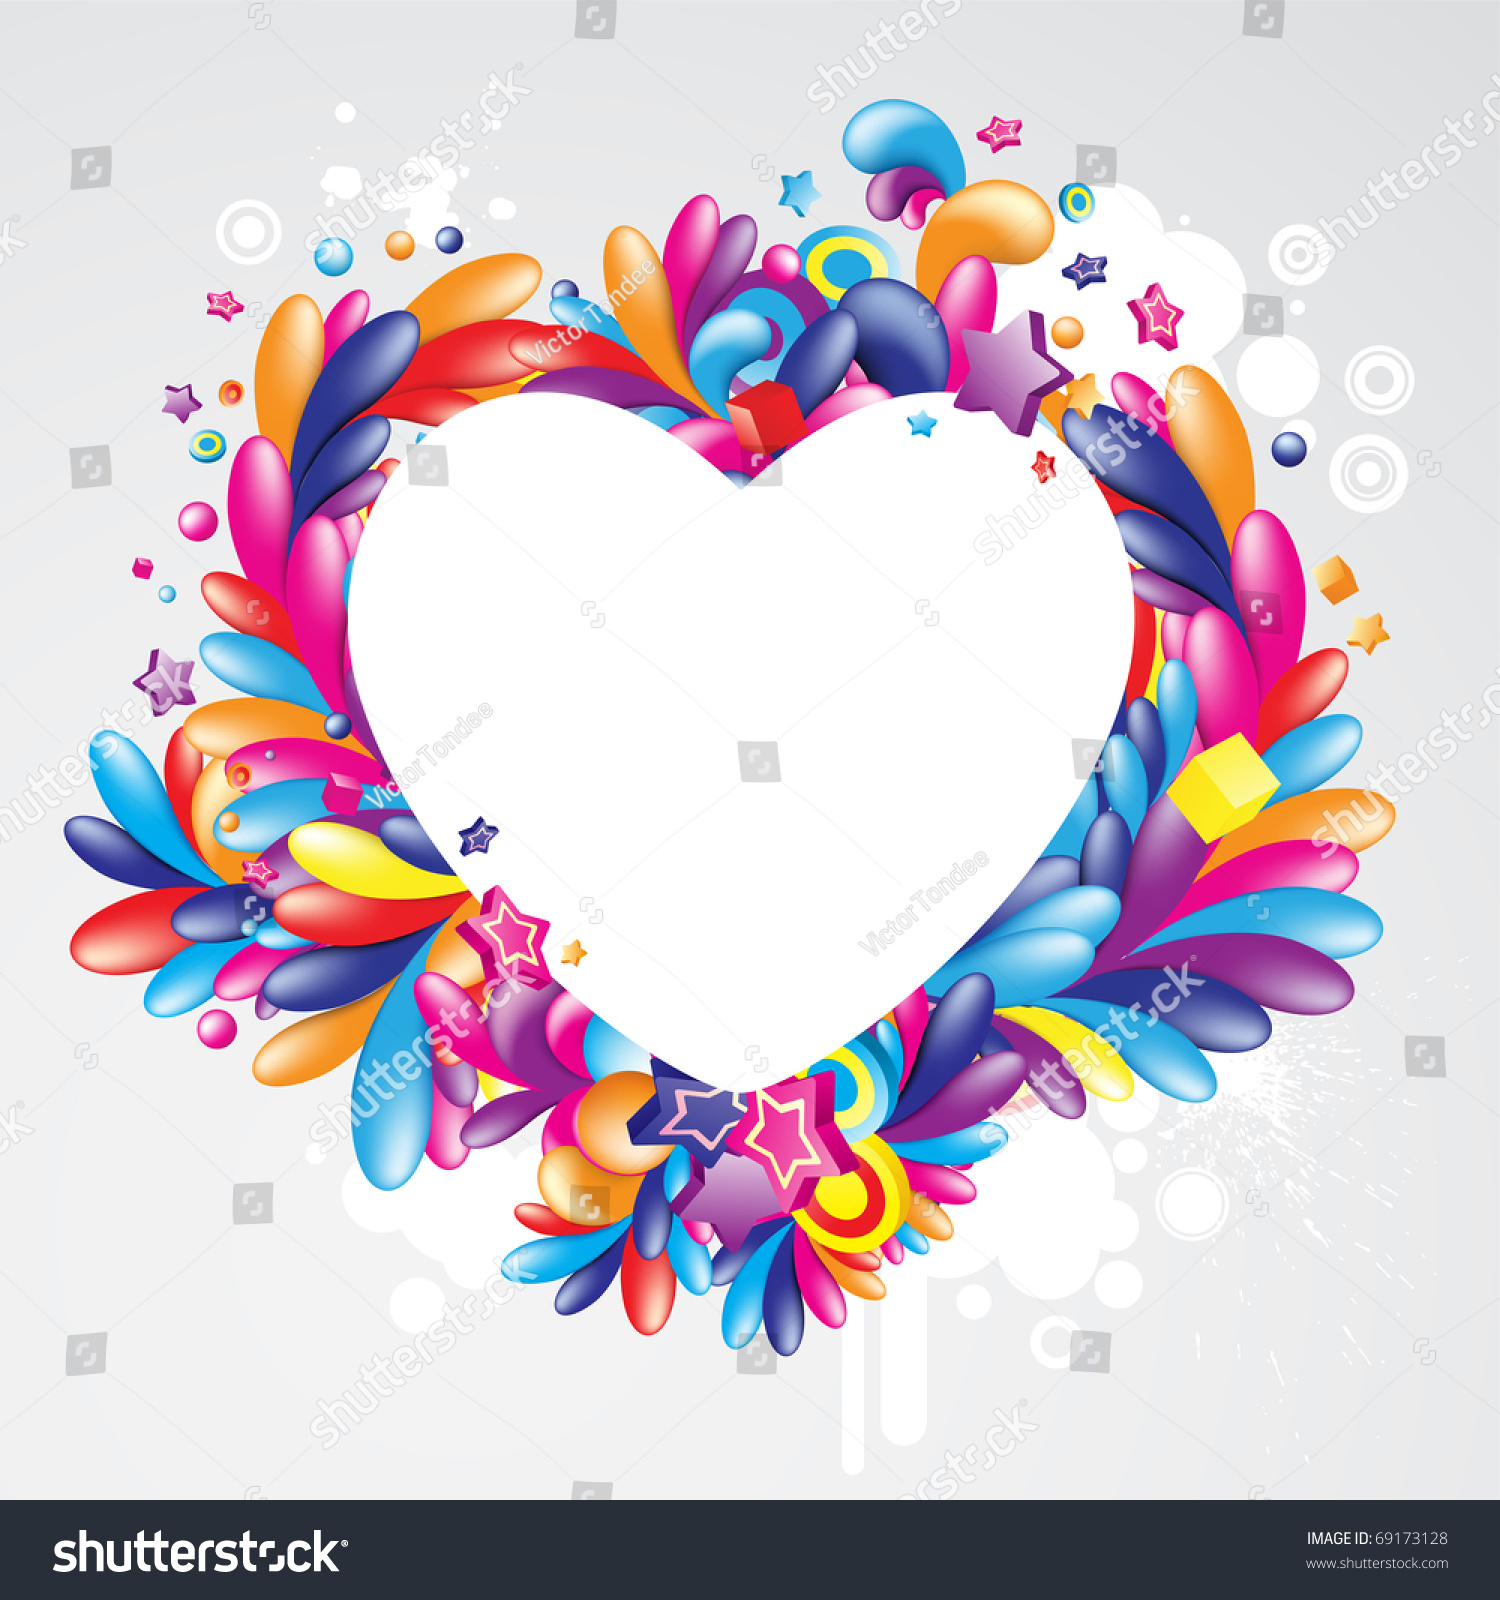 colorful heart shaped frame for your message